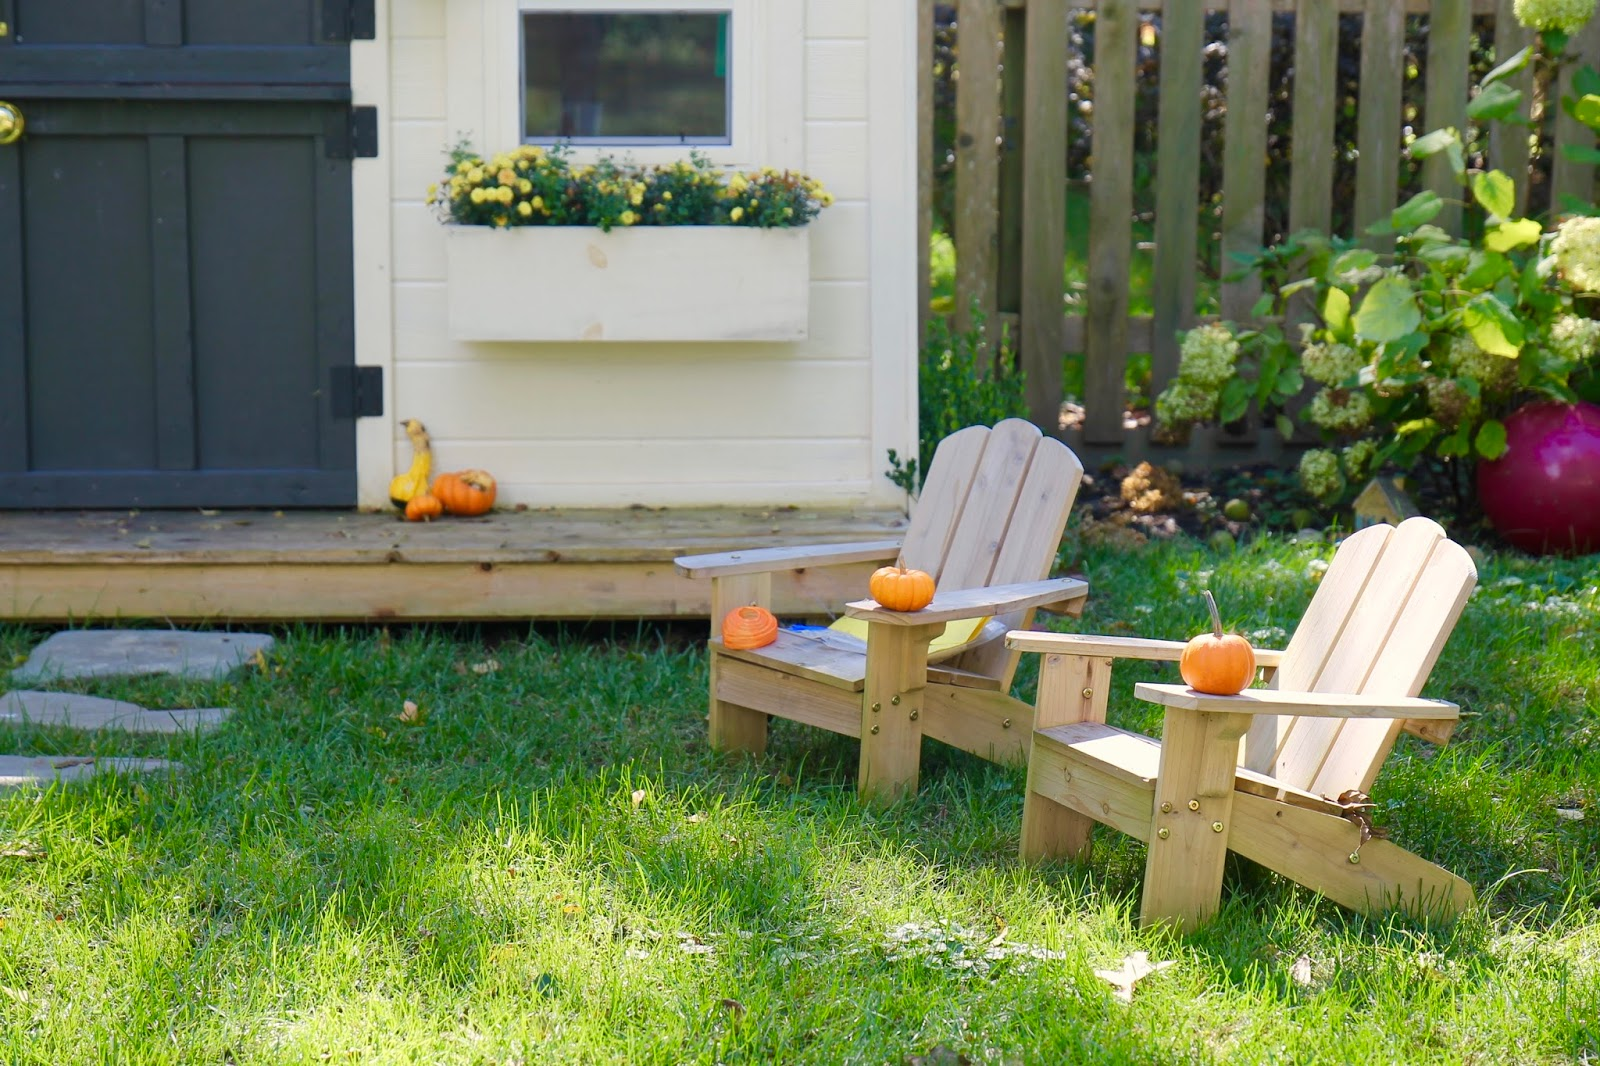 home depot rent a miter saw with We Built Playhouse Diy Workbook Photos on Yellow Trash Bags moreover 172515 furthermore Table Saw Rental Lowes Home Furnitures moreover Home Remedy For Ants in addition Diy Pine Table.